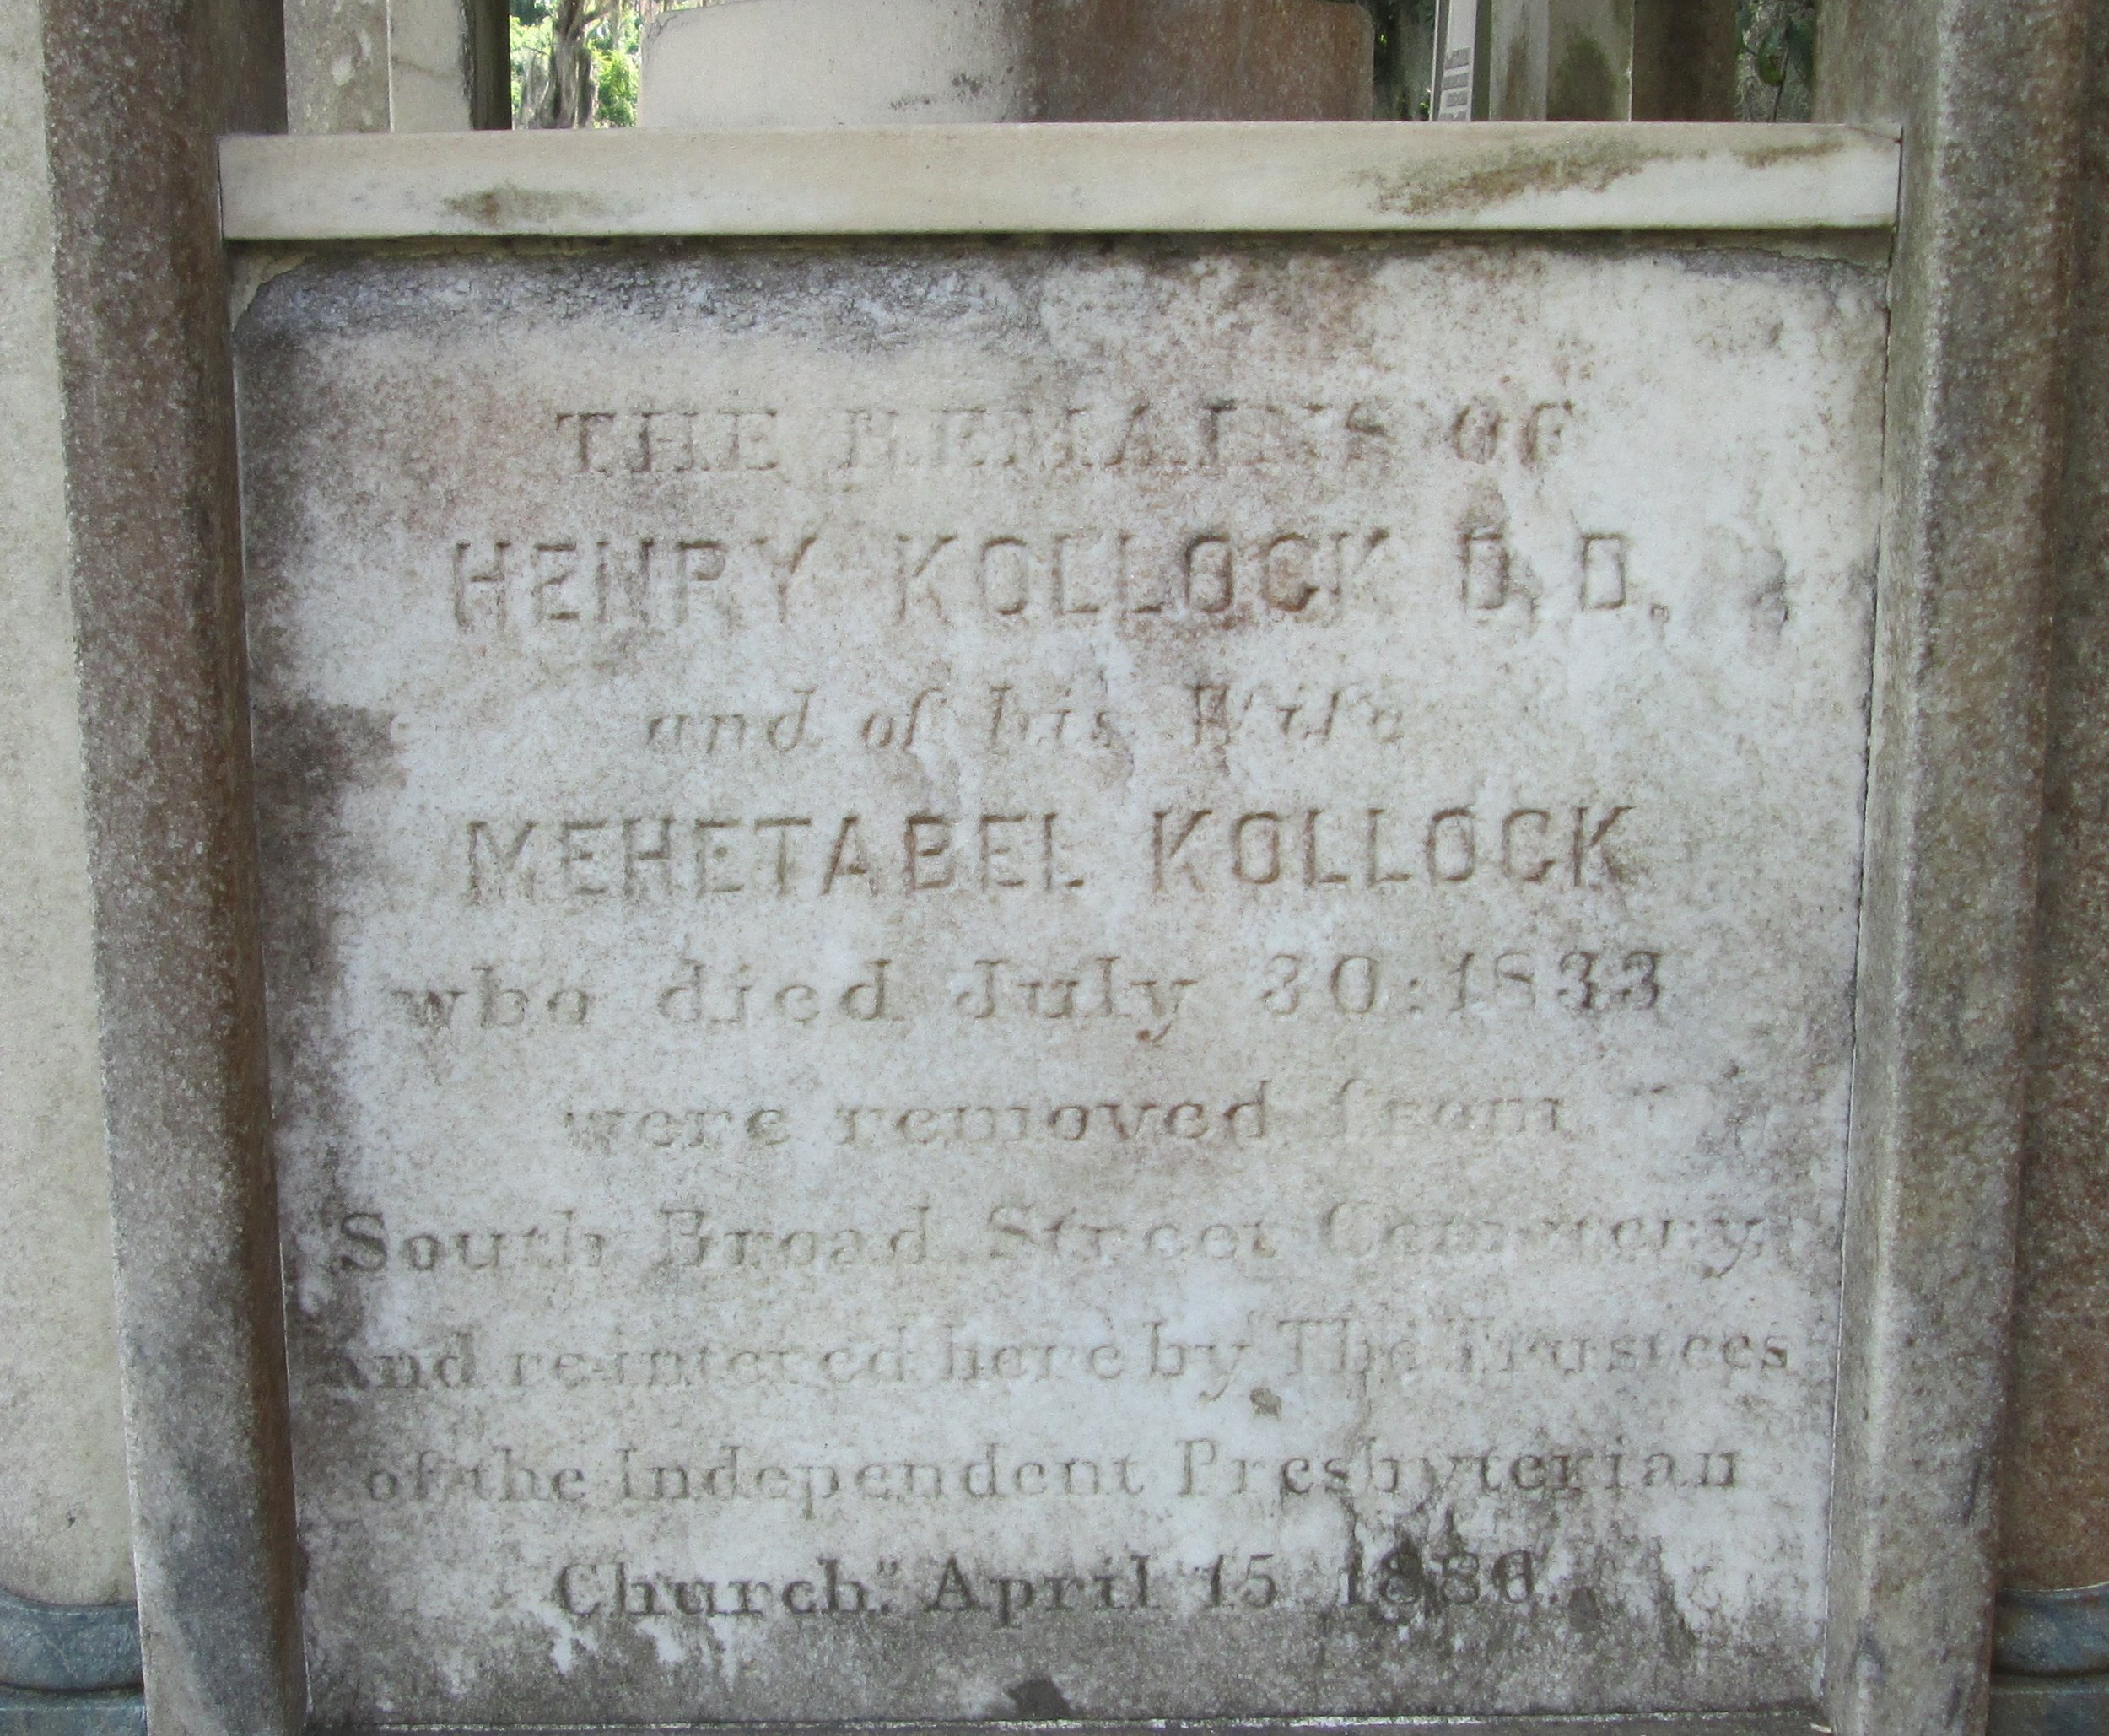 Henry Kollock and his wife Mehetabel were originally buried at the Old Savannah Cemetery, which is now known as Colonial Park. In 1866, their remains were reinterred in the Laurel Grove Cemetery, Savannah, Georgia.